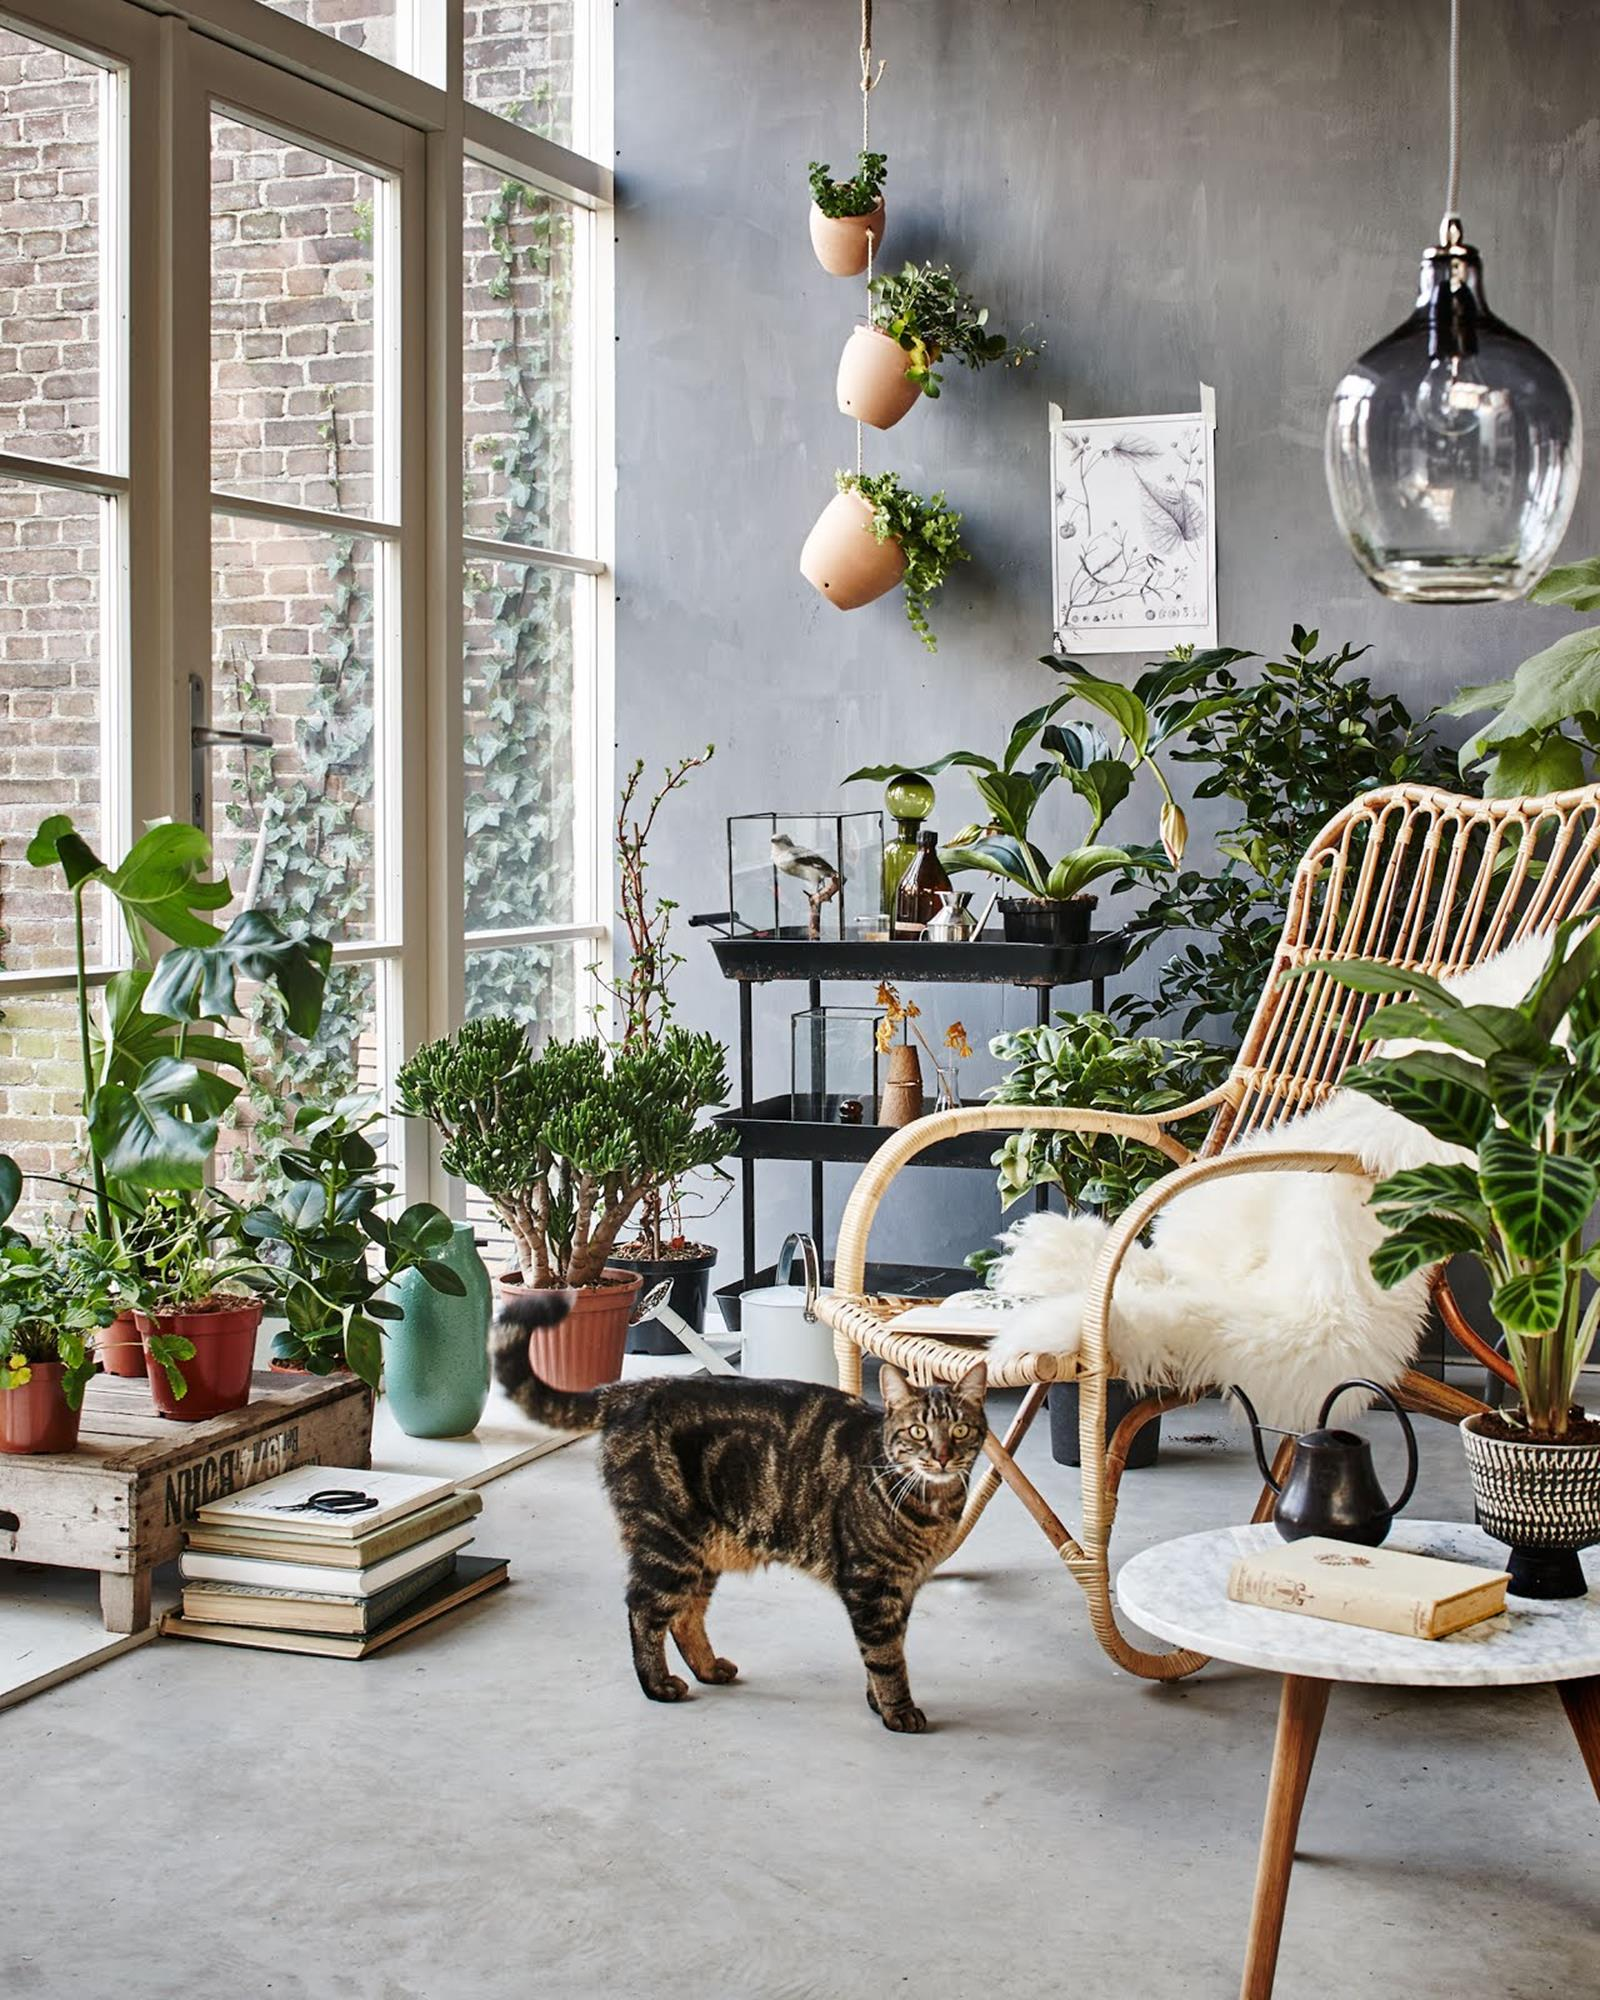 Urban Jungle Room Decor 31